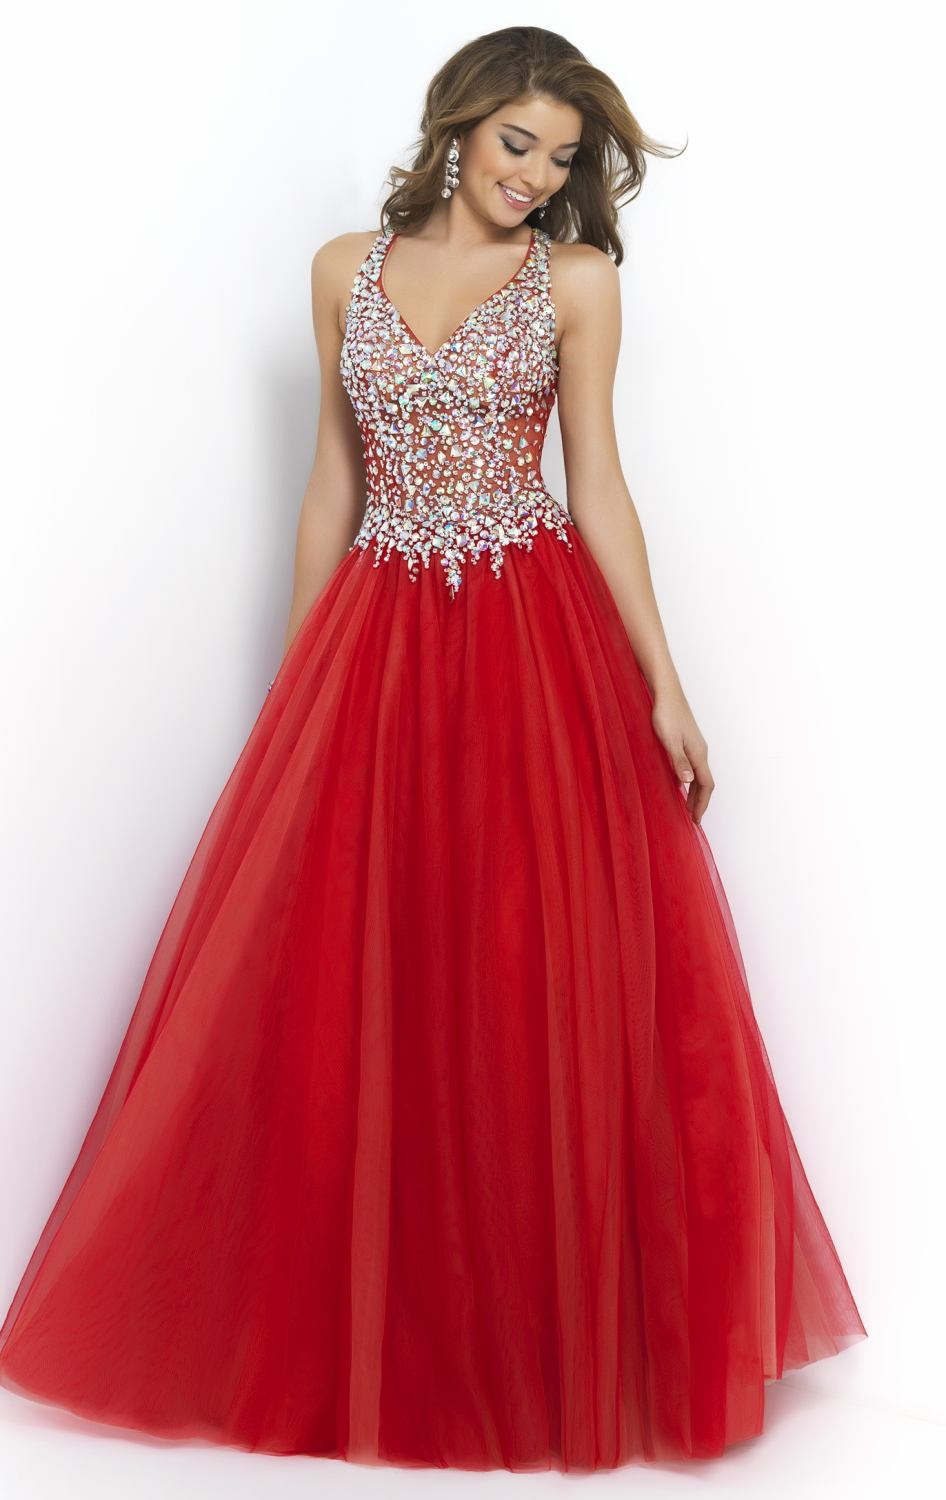 Inexpensive strapless prom dresses